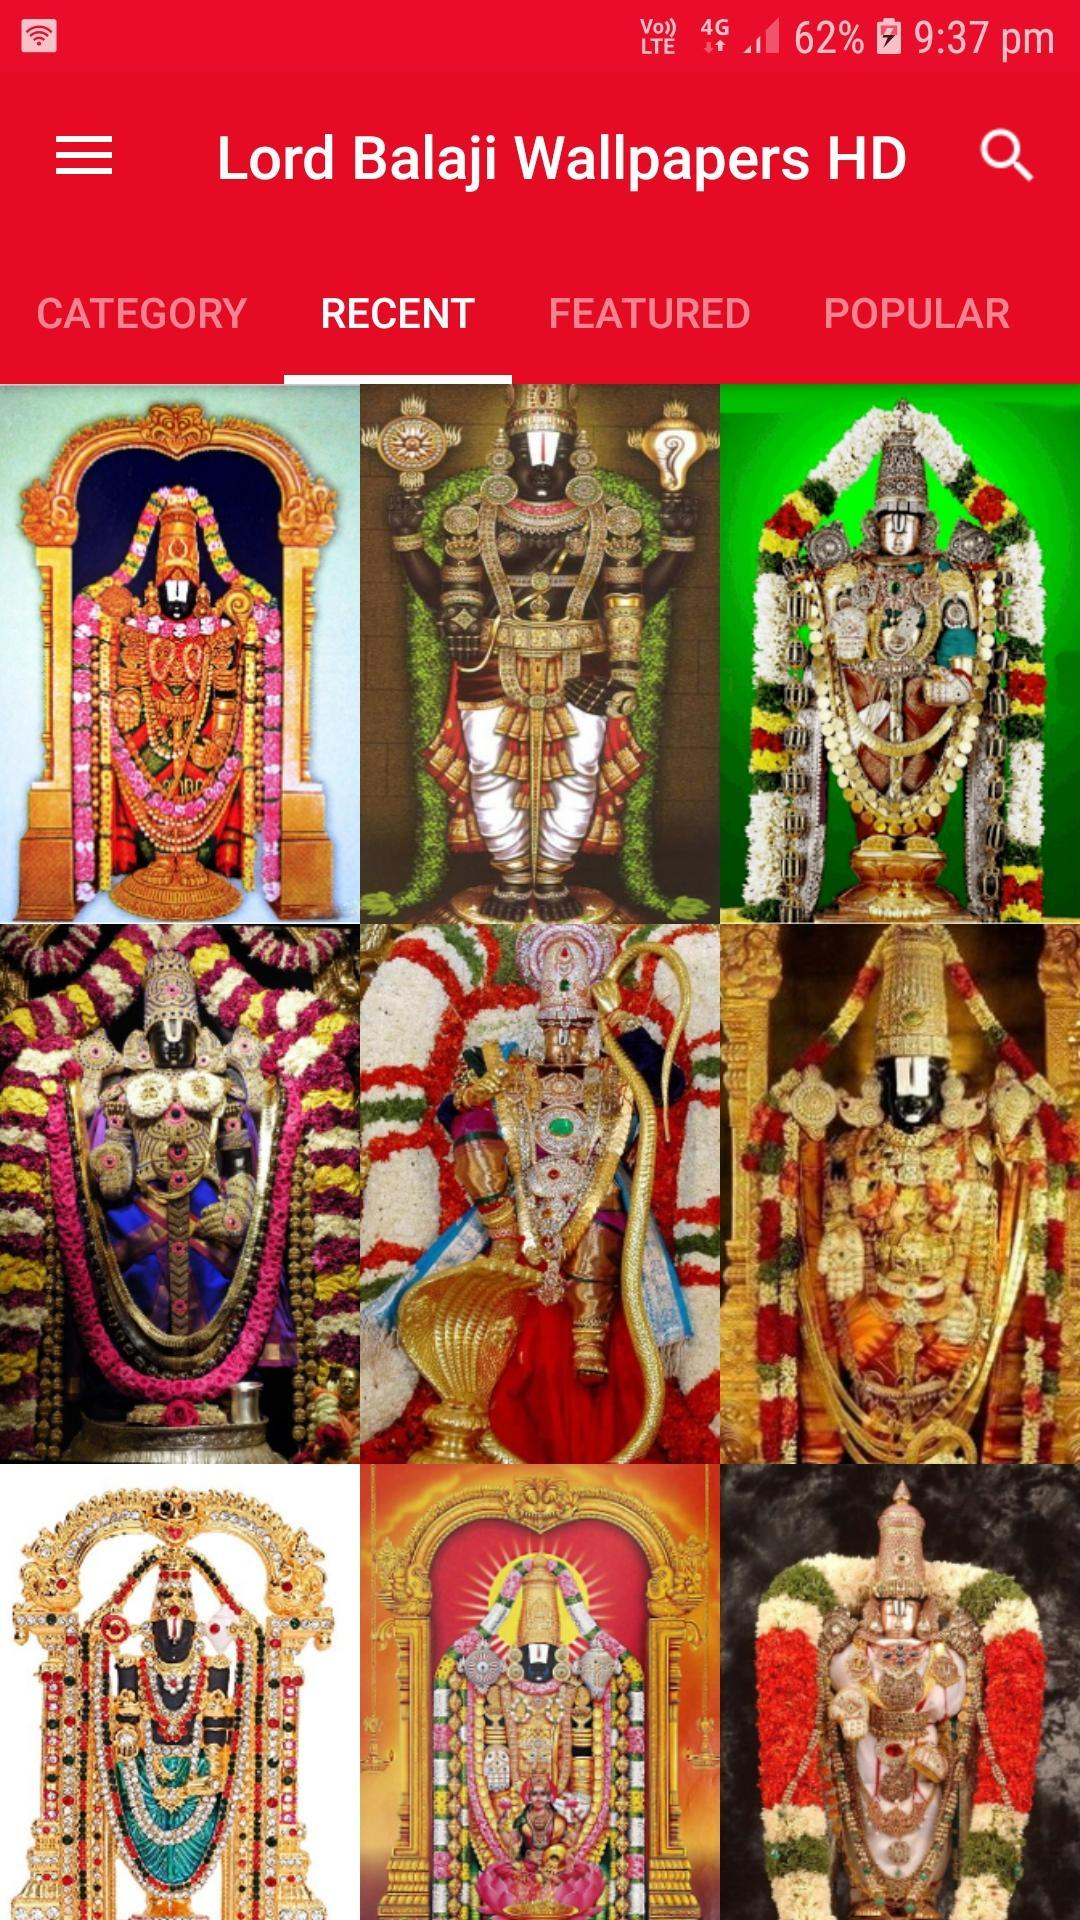 Tirupati Balaji Lord Venkateswara Hd Wallpapers For Android Apk Download